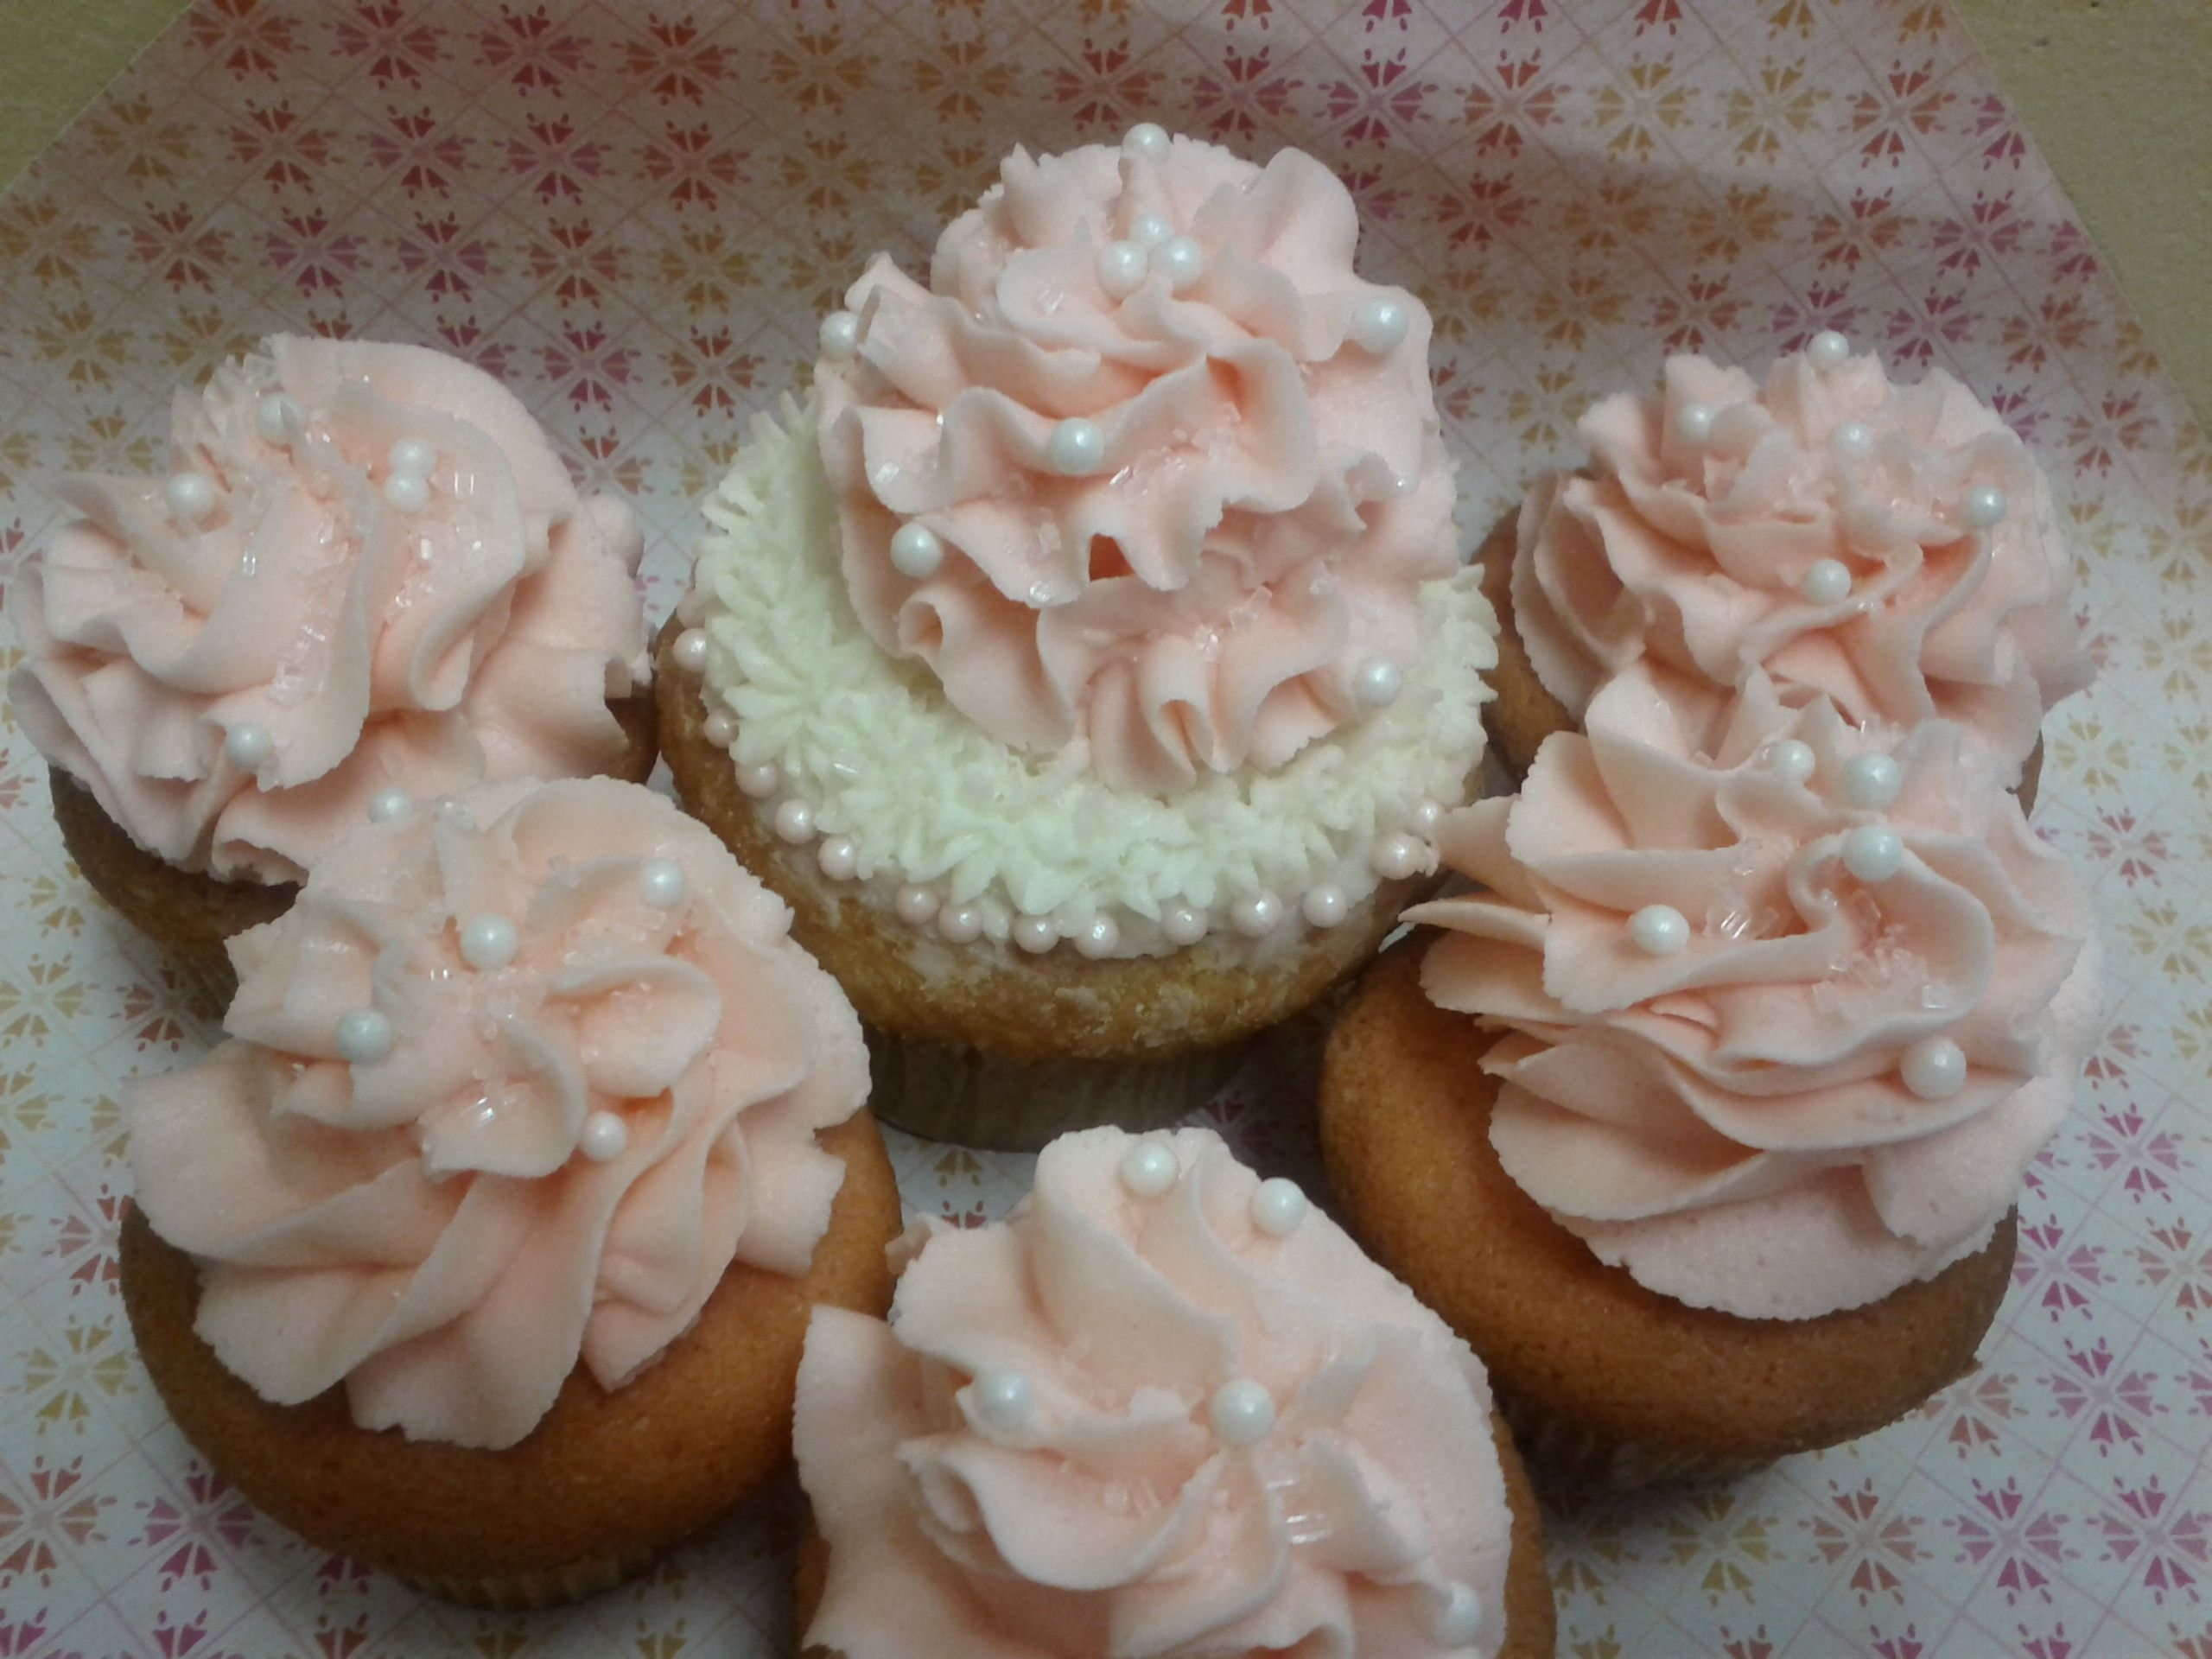 Serendipities Cupcakes in Lincoln - Yahoo Local